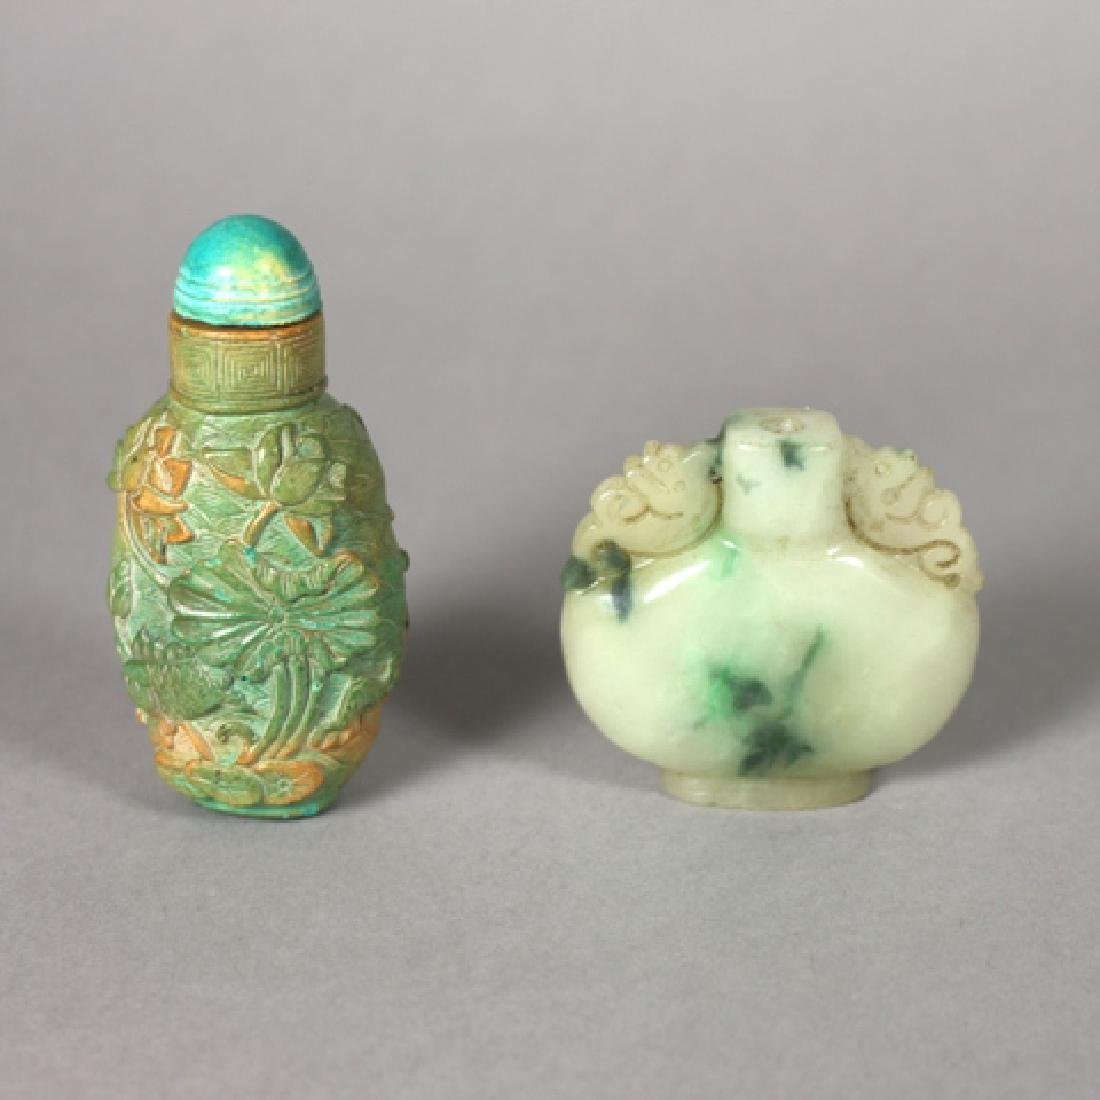 Mixed White Jade and Carved Stone Snuff Bottles